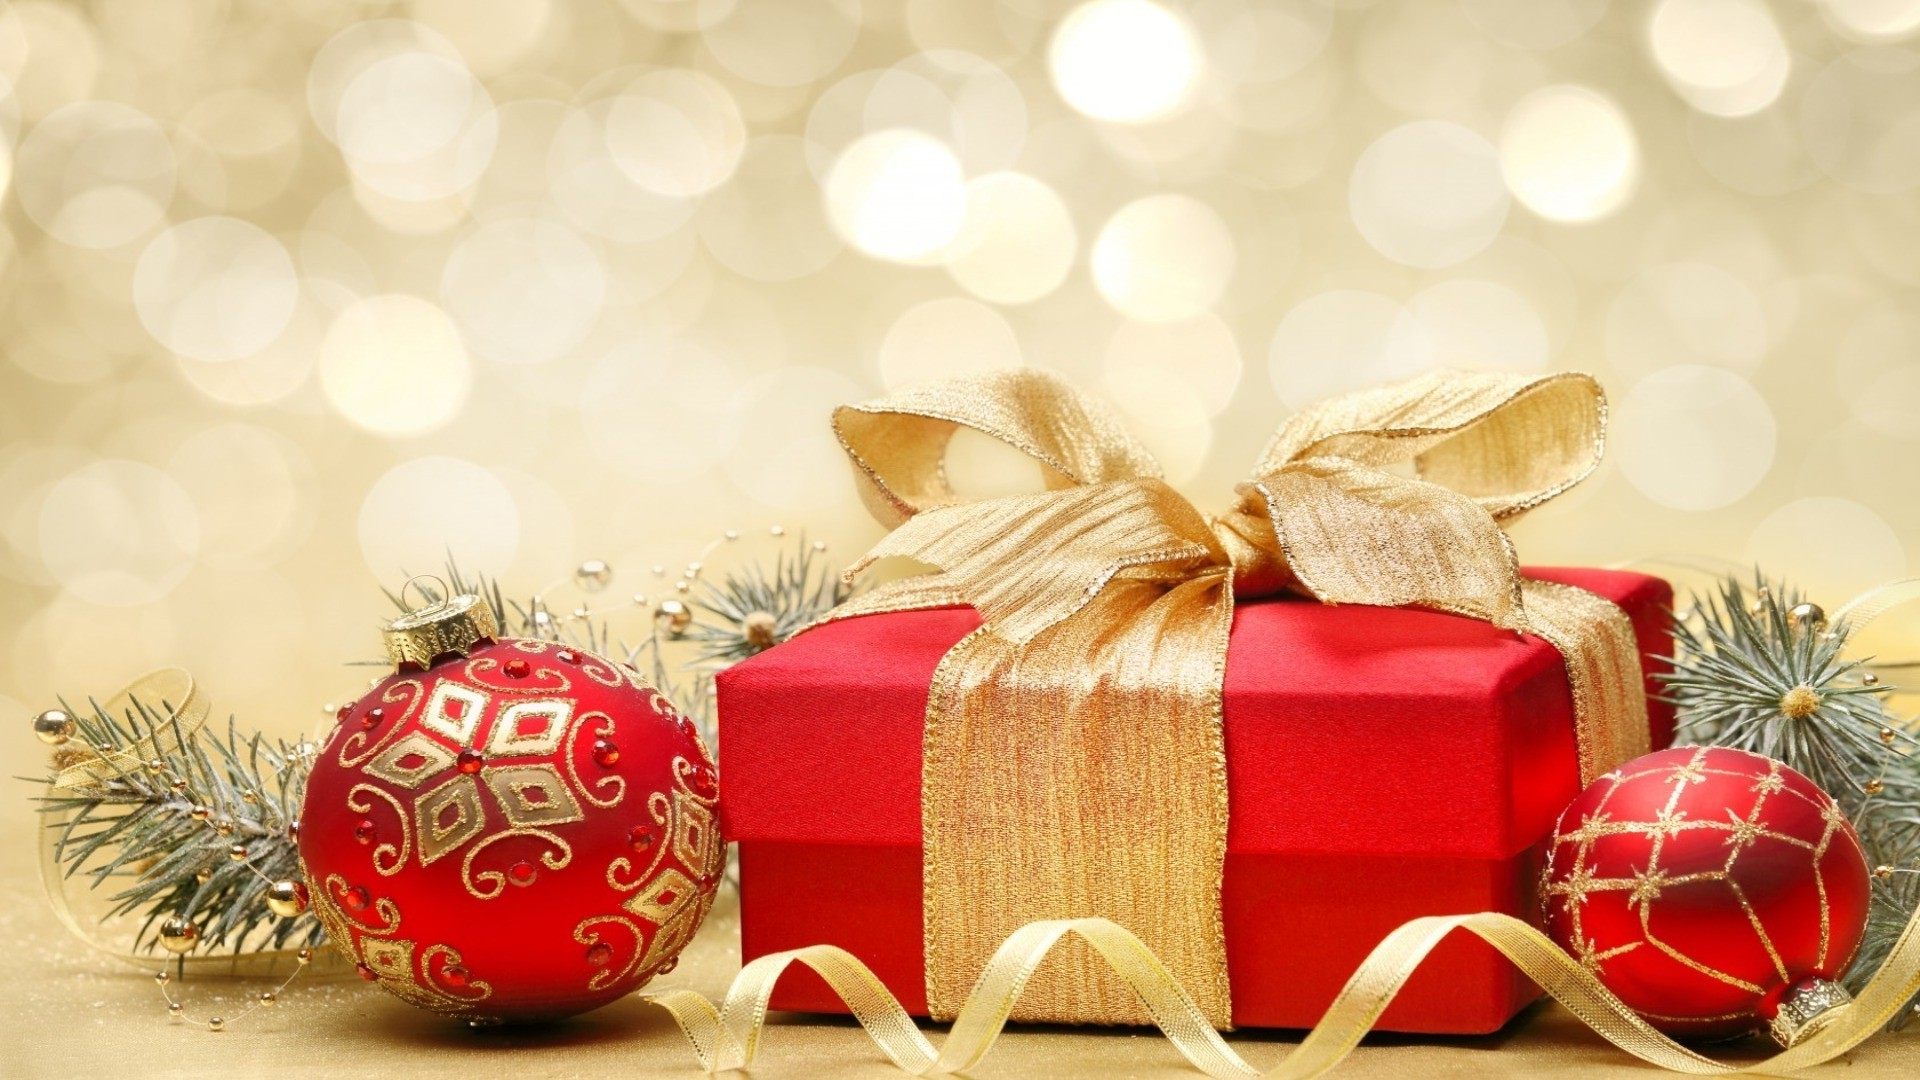 Christmas Gift Balls Fir Tree Branches Android Wallpapers